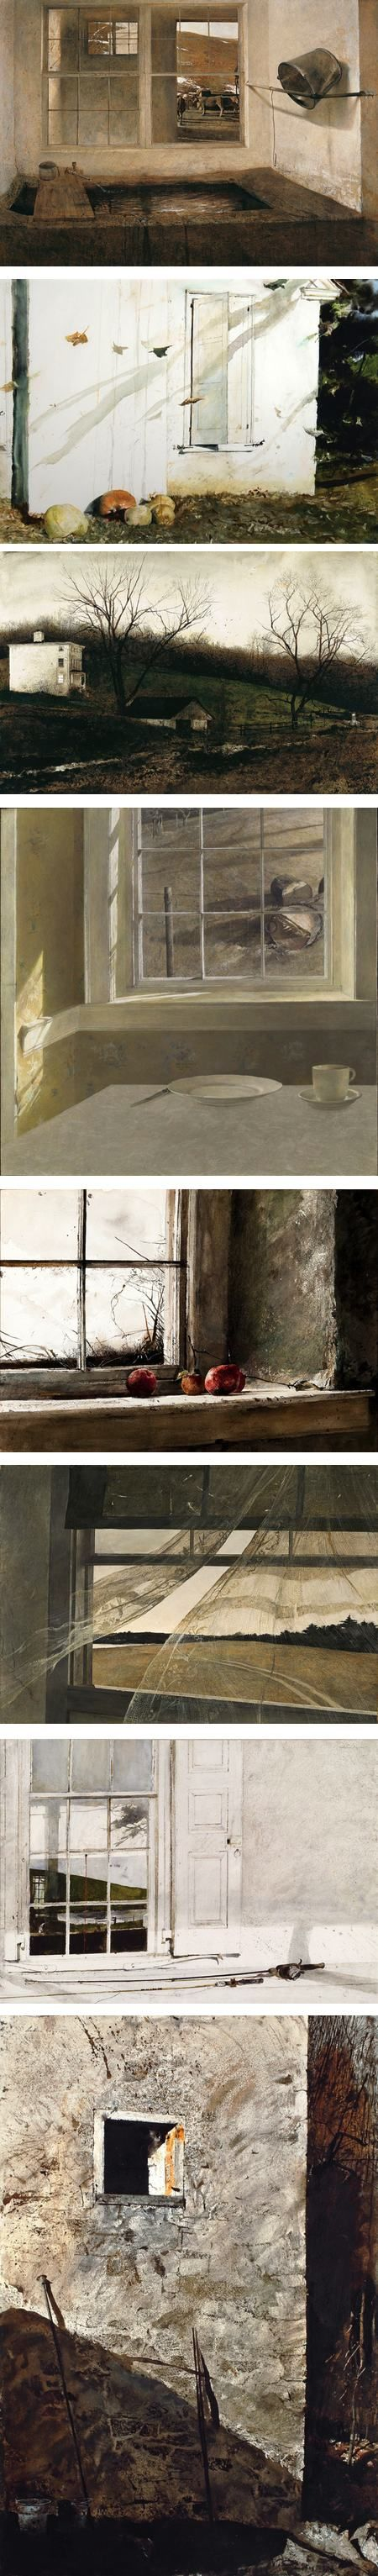 Andrew Wyeth's windows